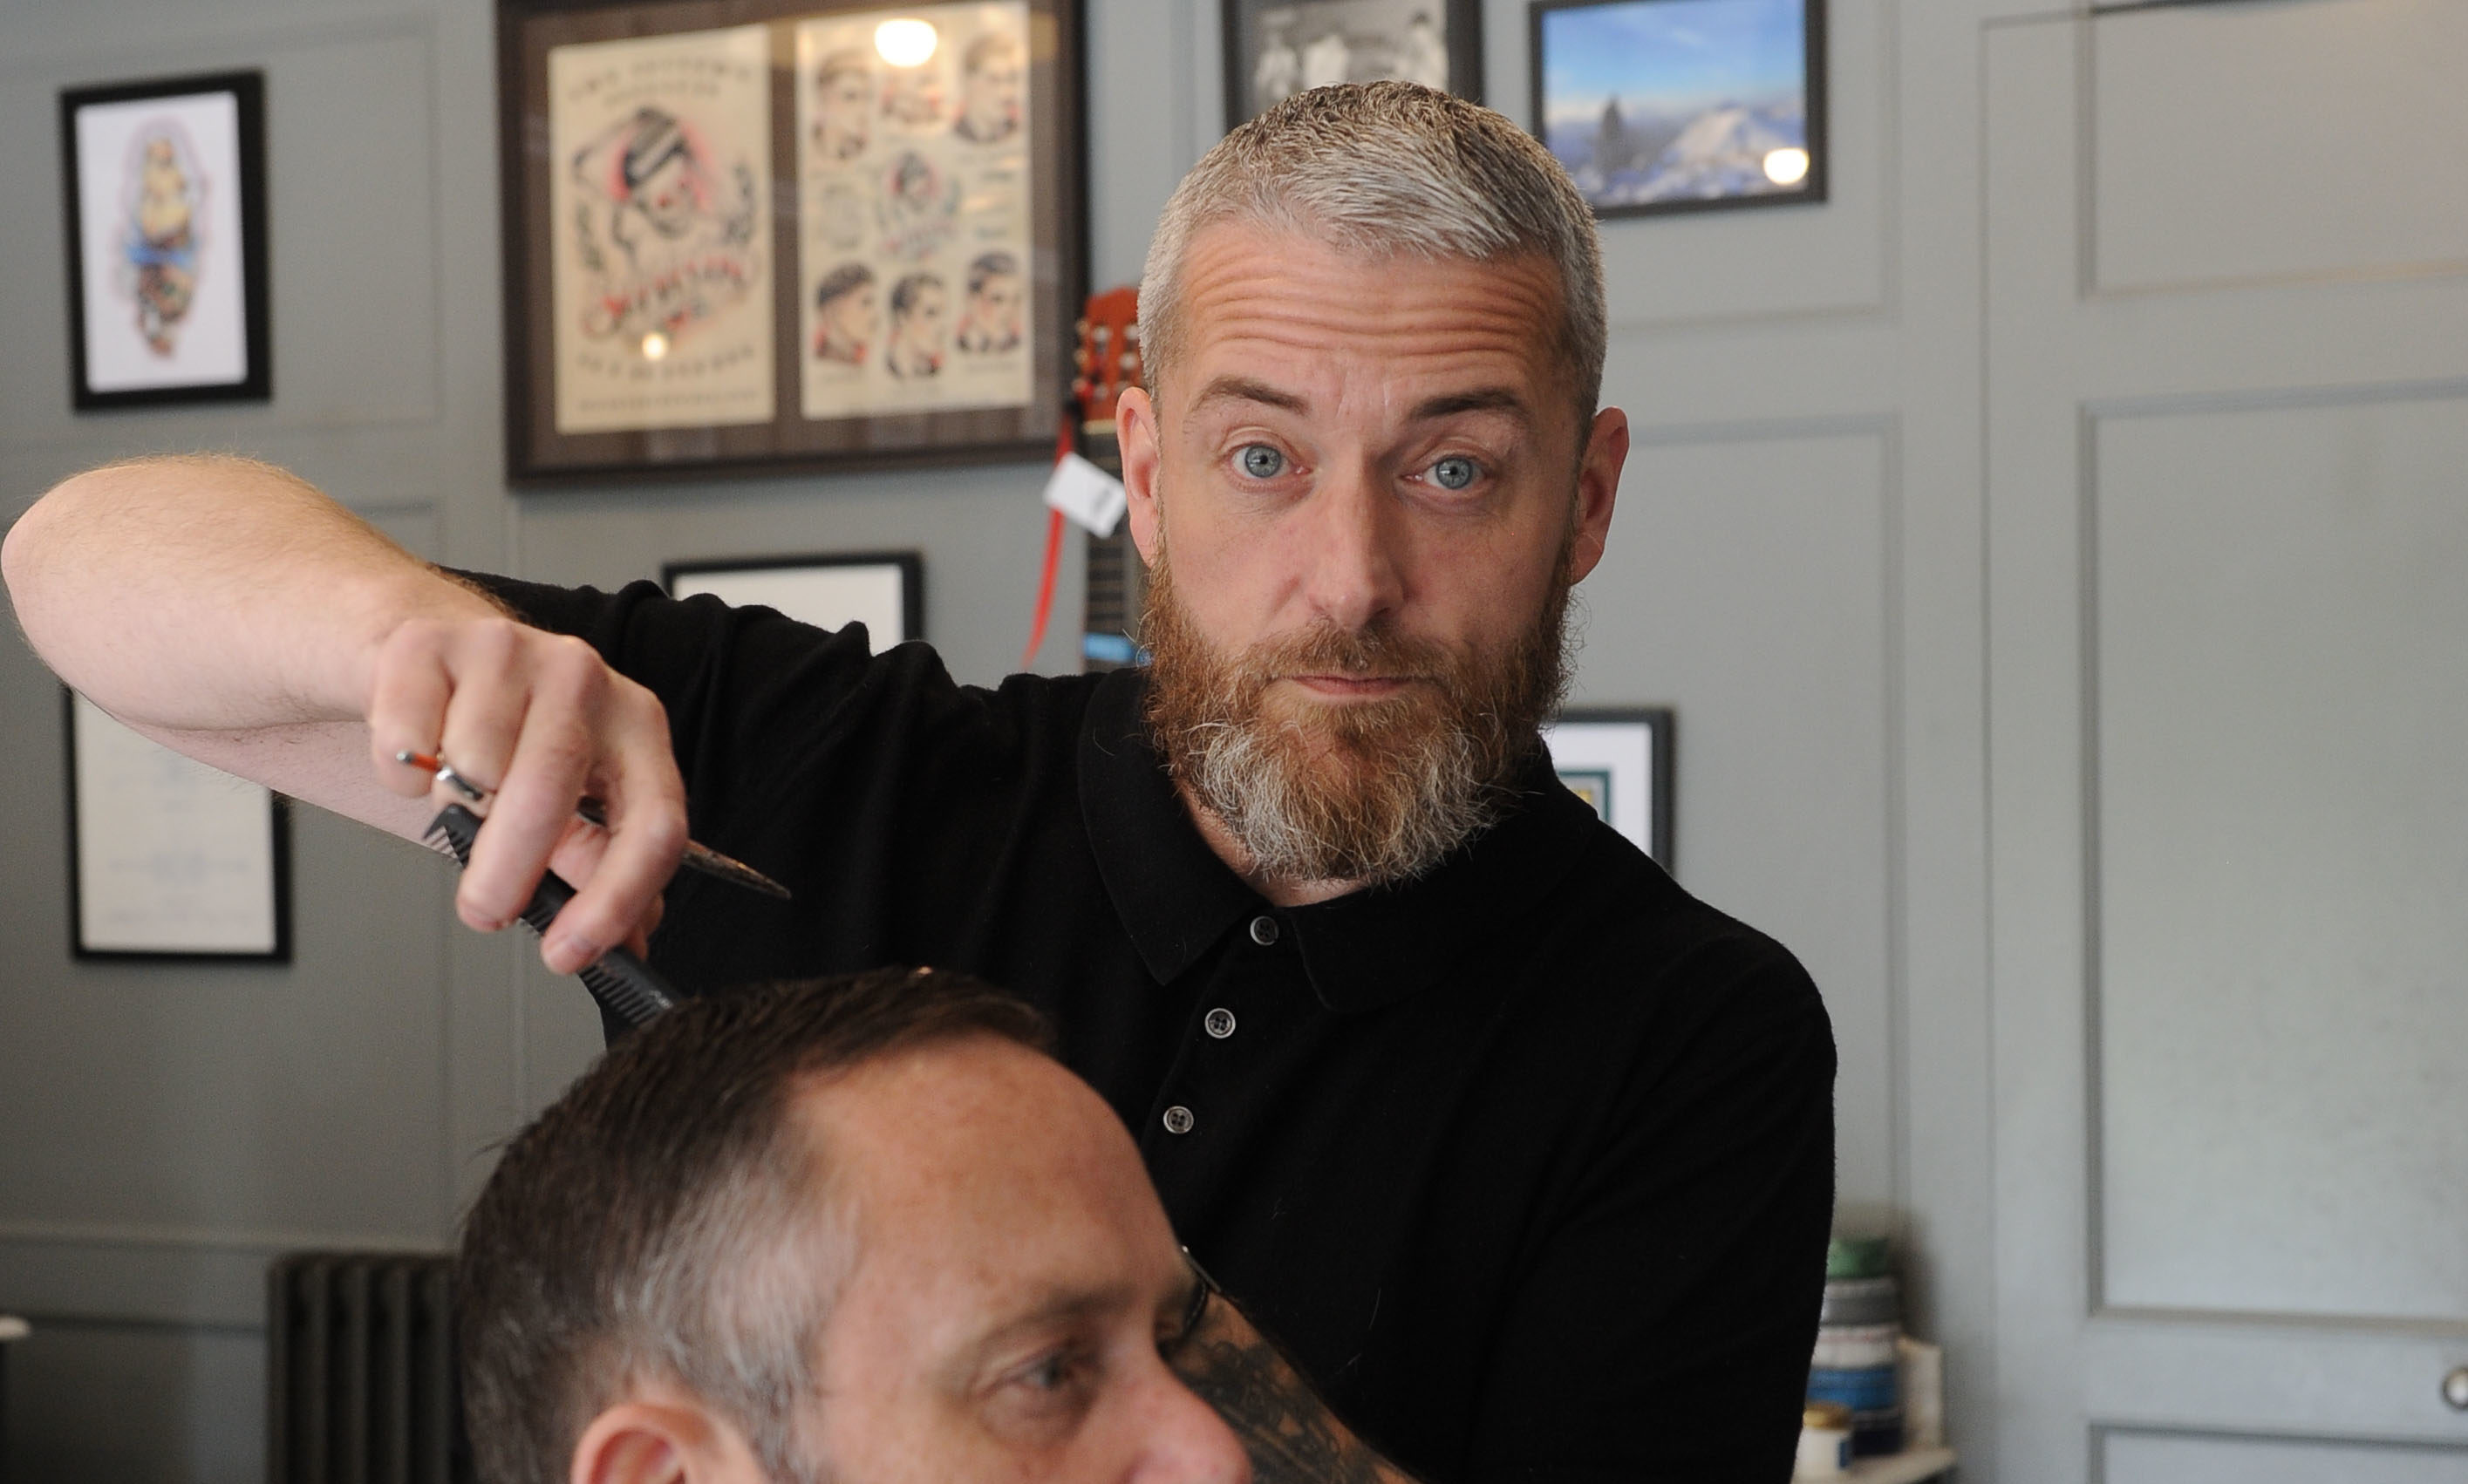 Barber Brian Jobson at his barber shop in Dunfermline.